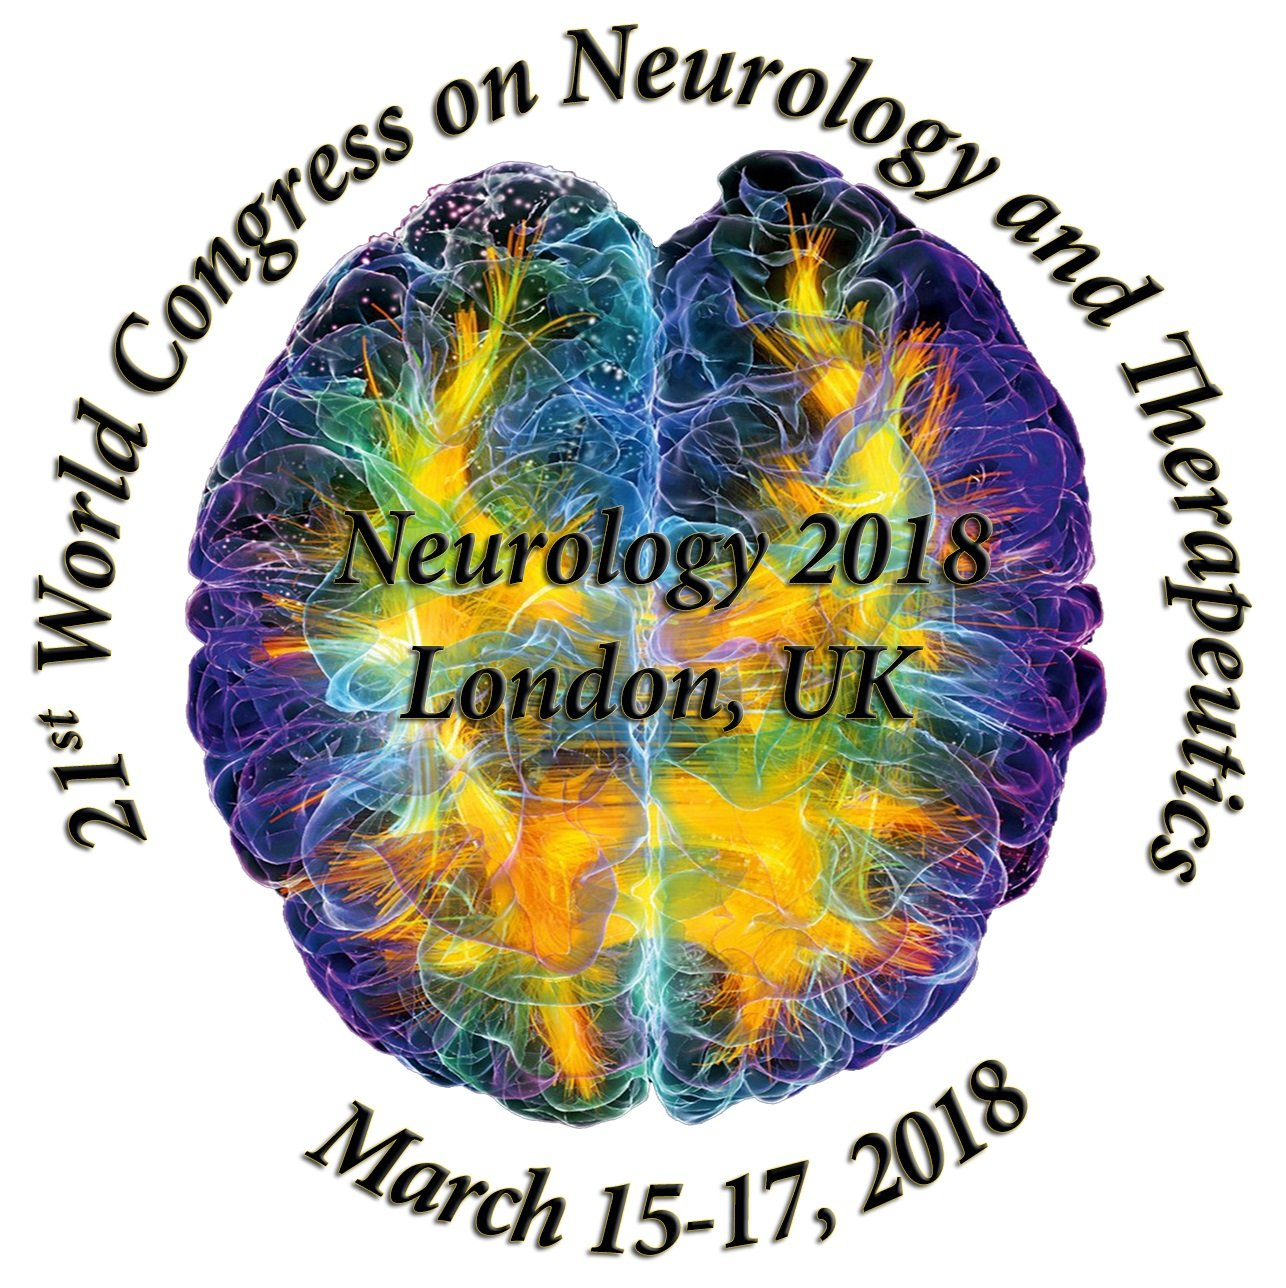 Ronnie Rivera: 'neurology conference 2018', 2017 Digital Art, Education. Artist Description: The 21st World Congress on Neurology and Therapeutics is to be held during March 15- 17, 2018 in London, UK. Neurology Conference will be organized around the theme aEURoeExploring the Recent Innovations and Novel Therapies in Neurology and NeuroscienceaEUR. Neurology 2018 invites participants, moderators, and exhibitors from everywhere ...